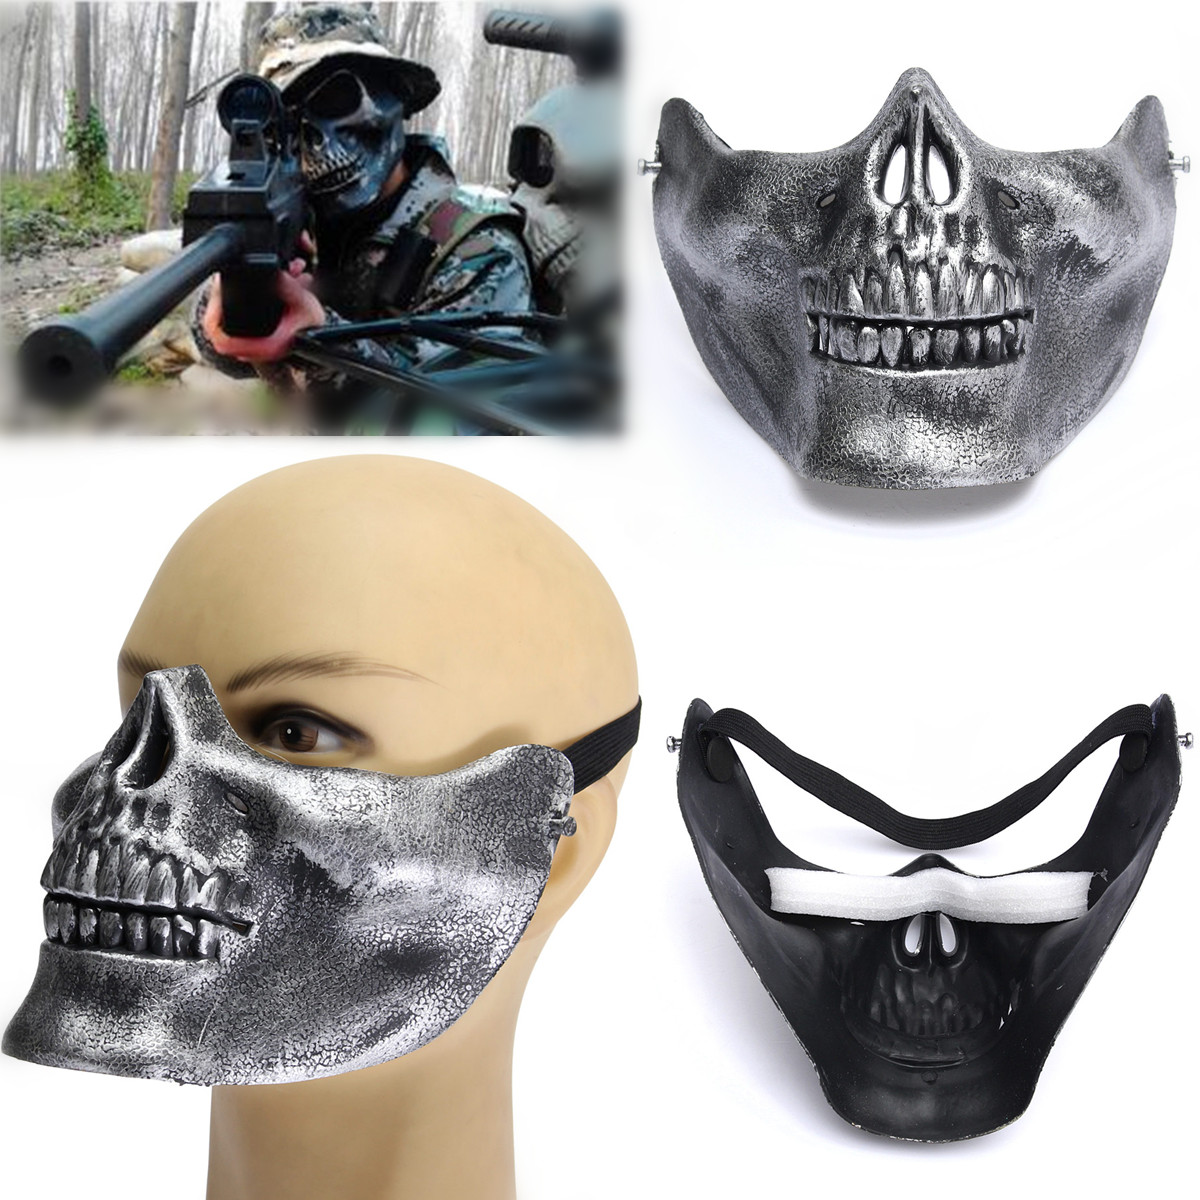 New Costume Halloween Airsoft Skull Mask Motorcycle ...